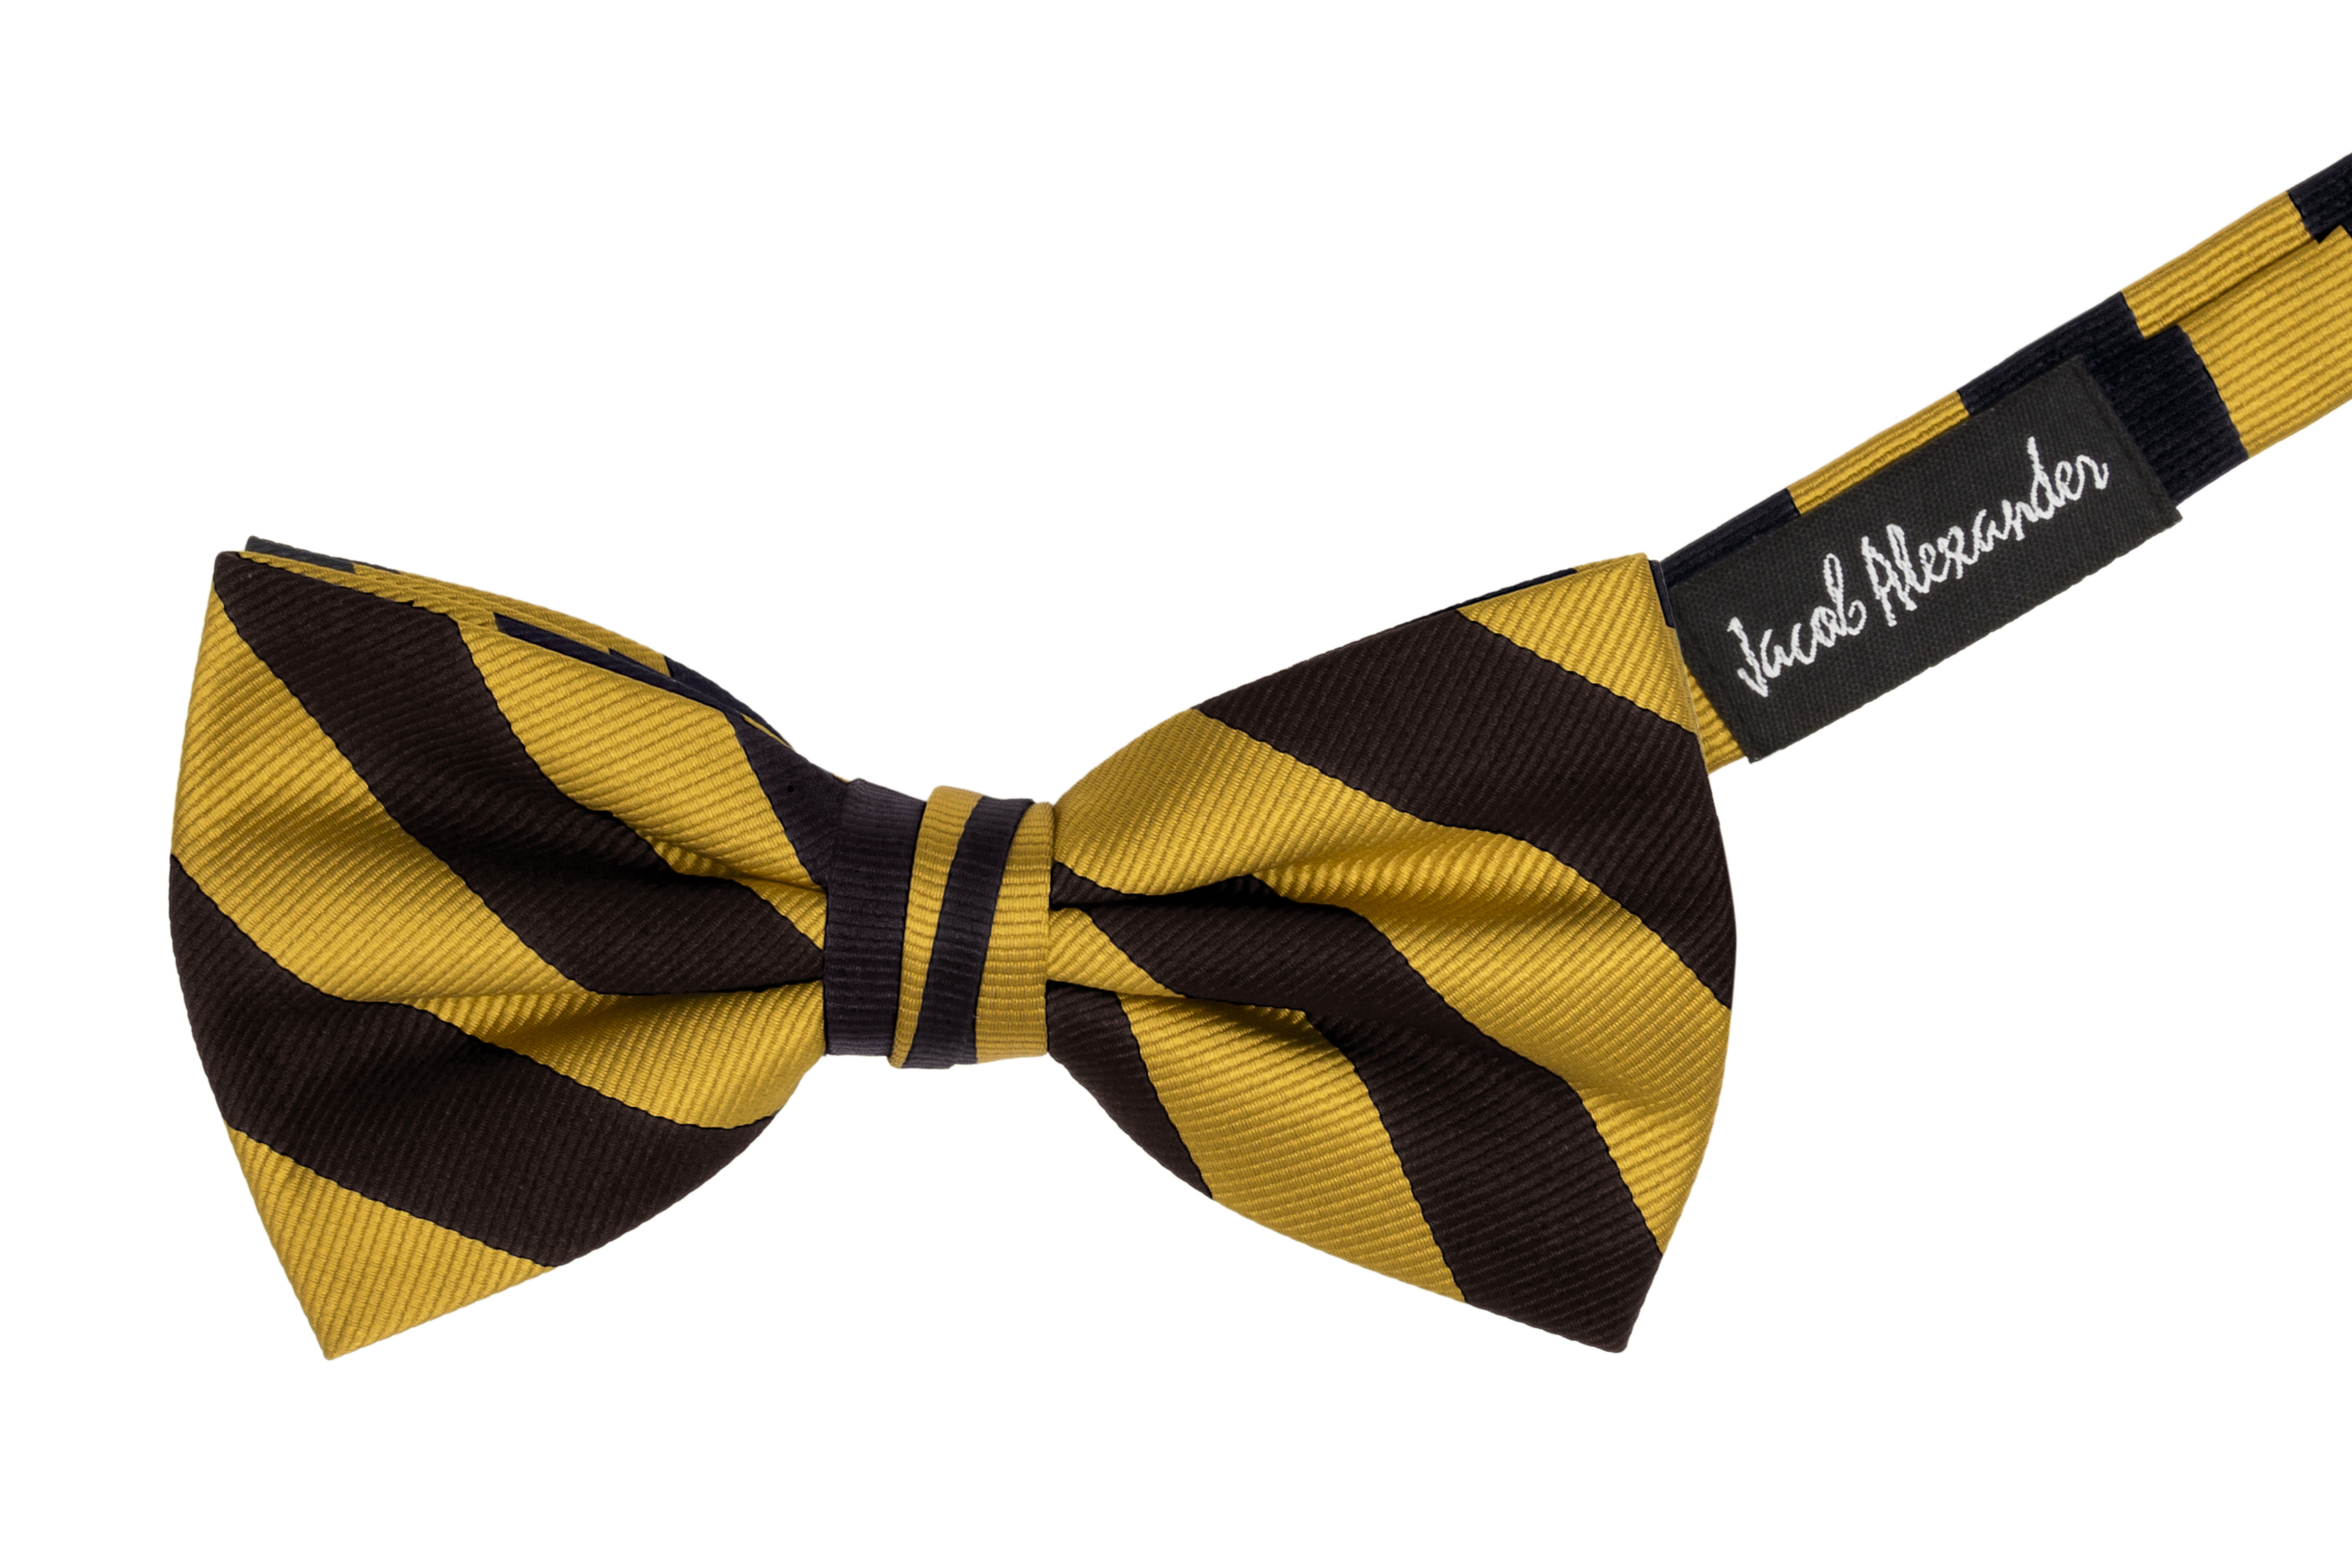 Jacob-Alexander-Stripe-Woven-Men-039-s-College-Striped-Pretied-Bowtie thumbnail 4